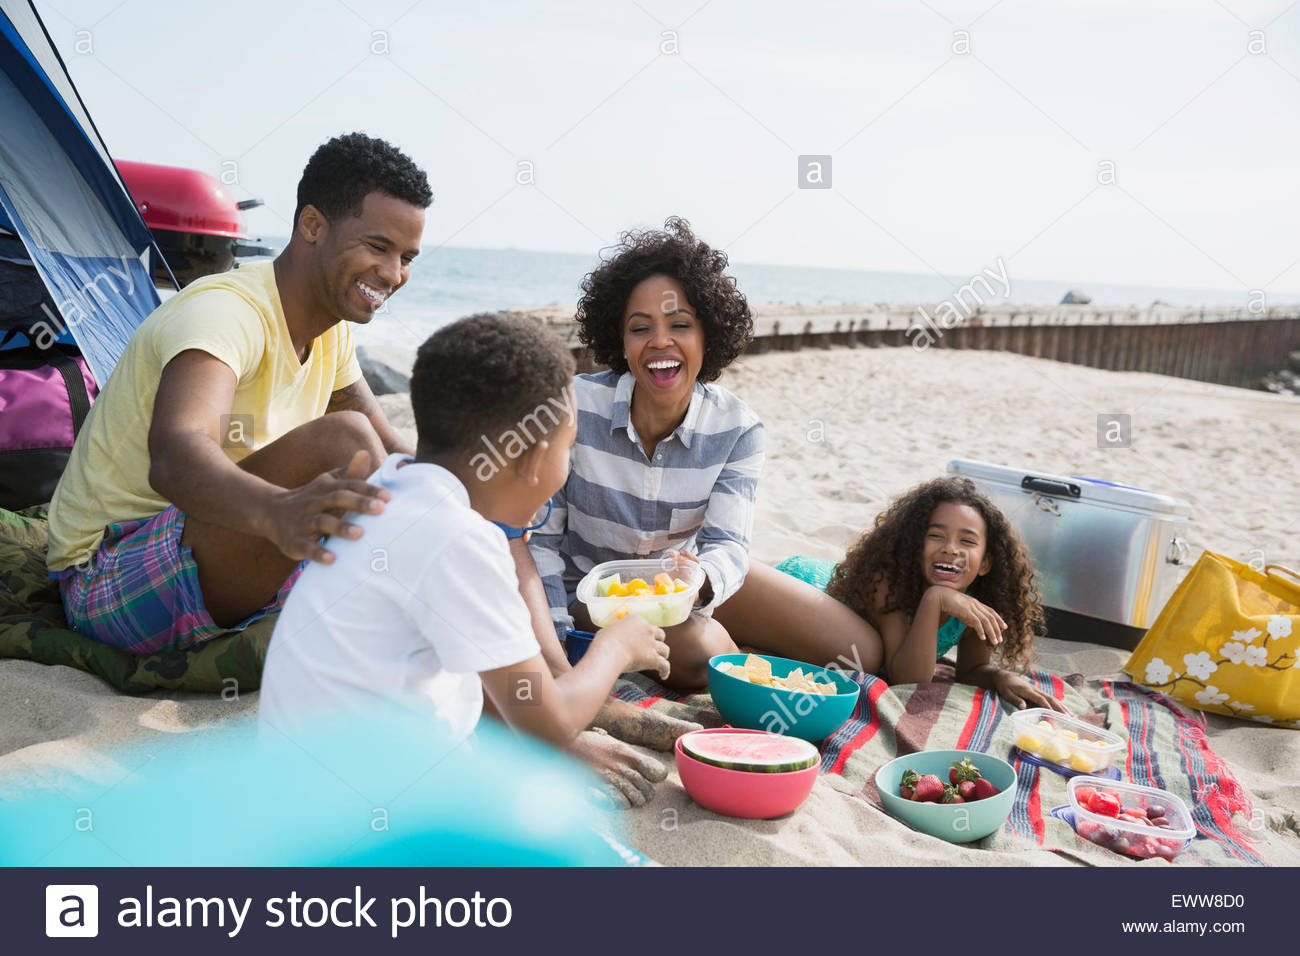 Family picnicking on beach - Stock Image